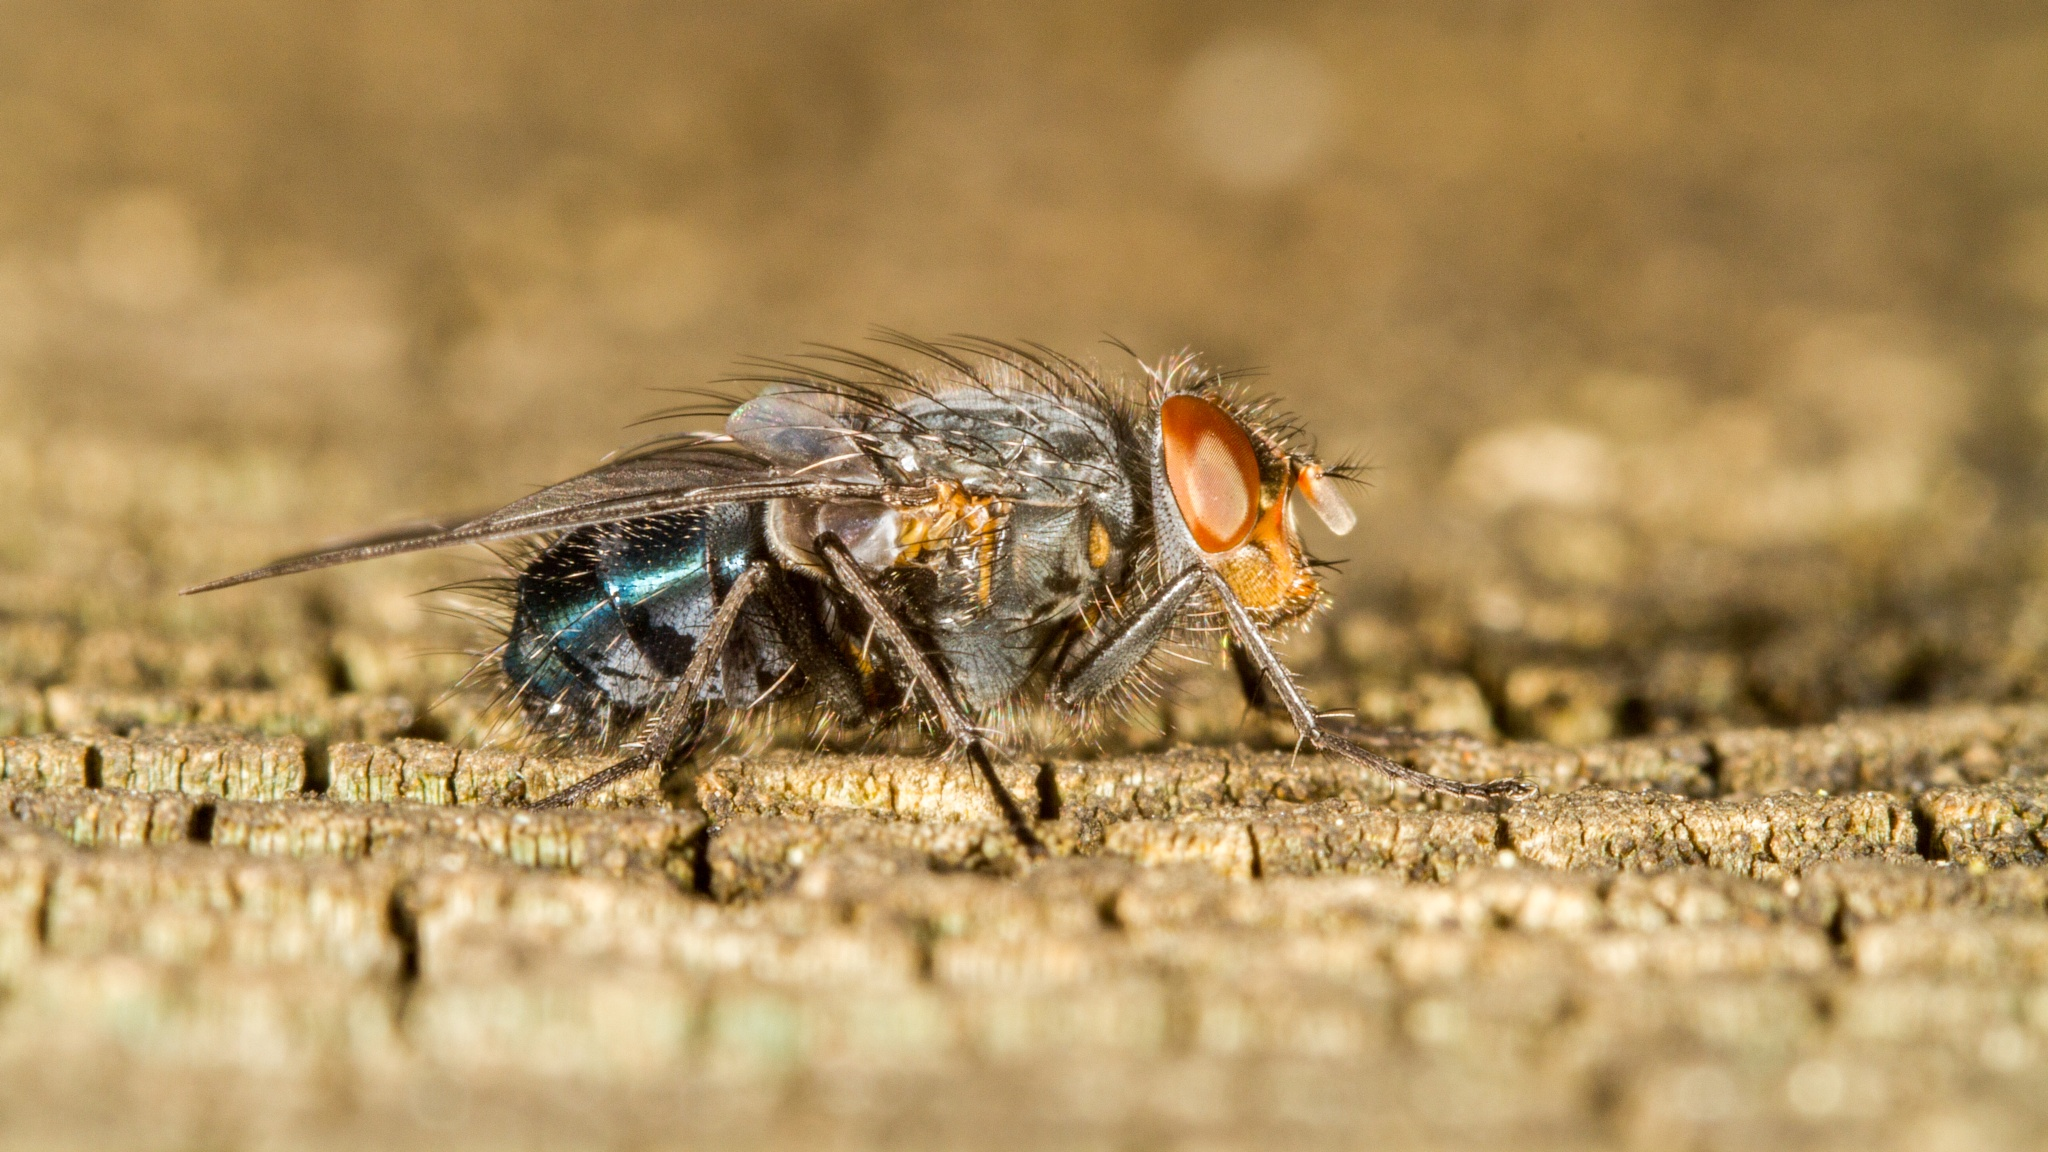 Blue Bottle Fly by David Arnold